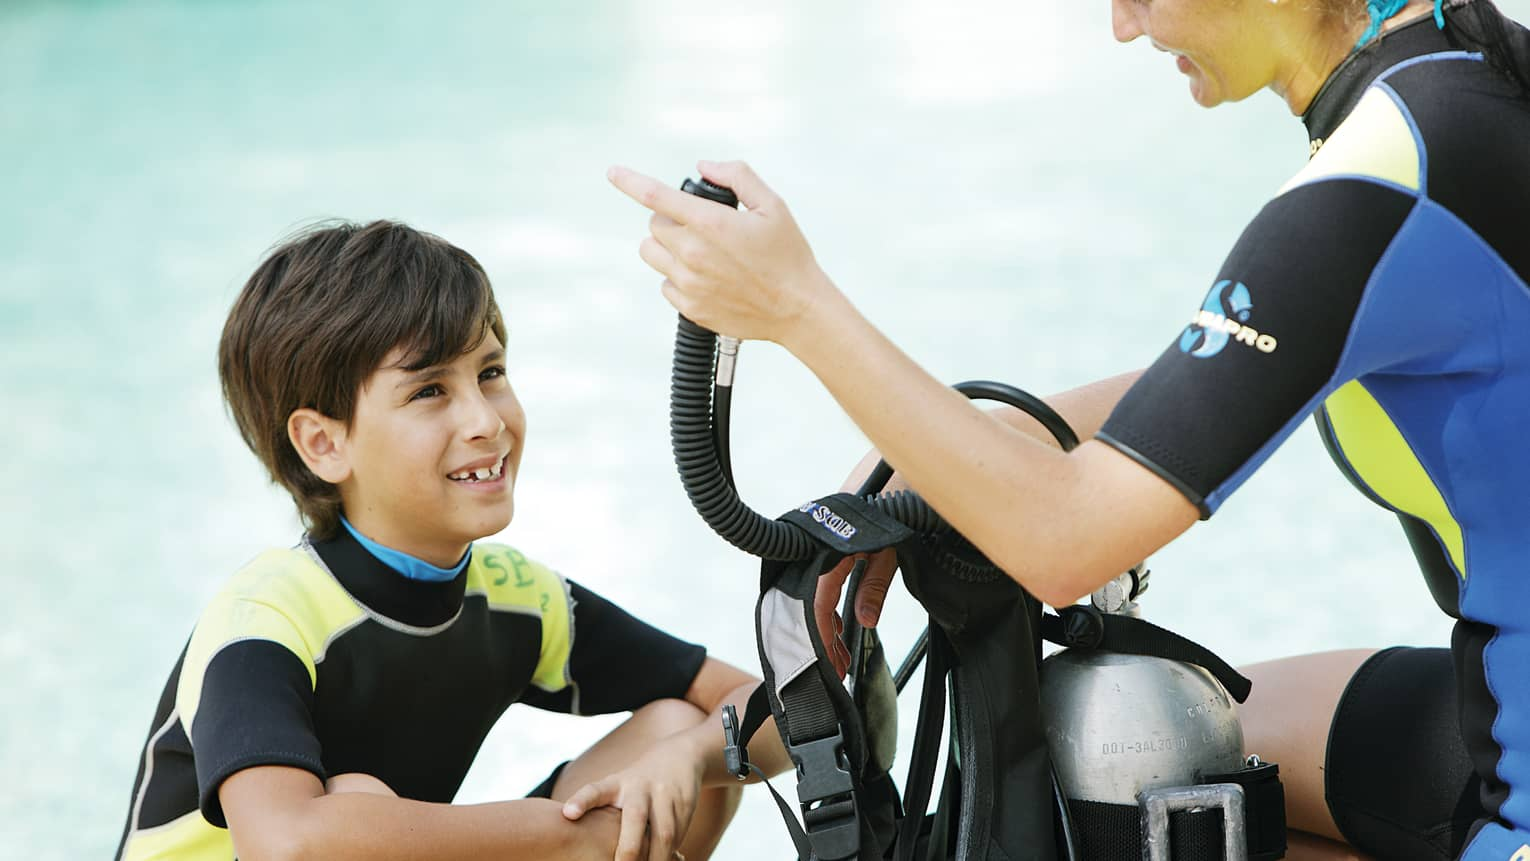 Boy in wetsuit in front of woman giving scuba diving instruction